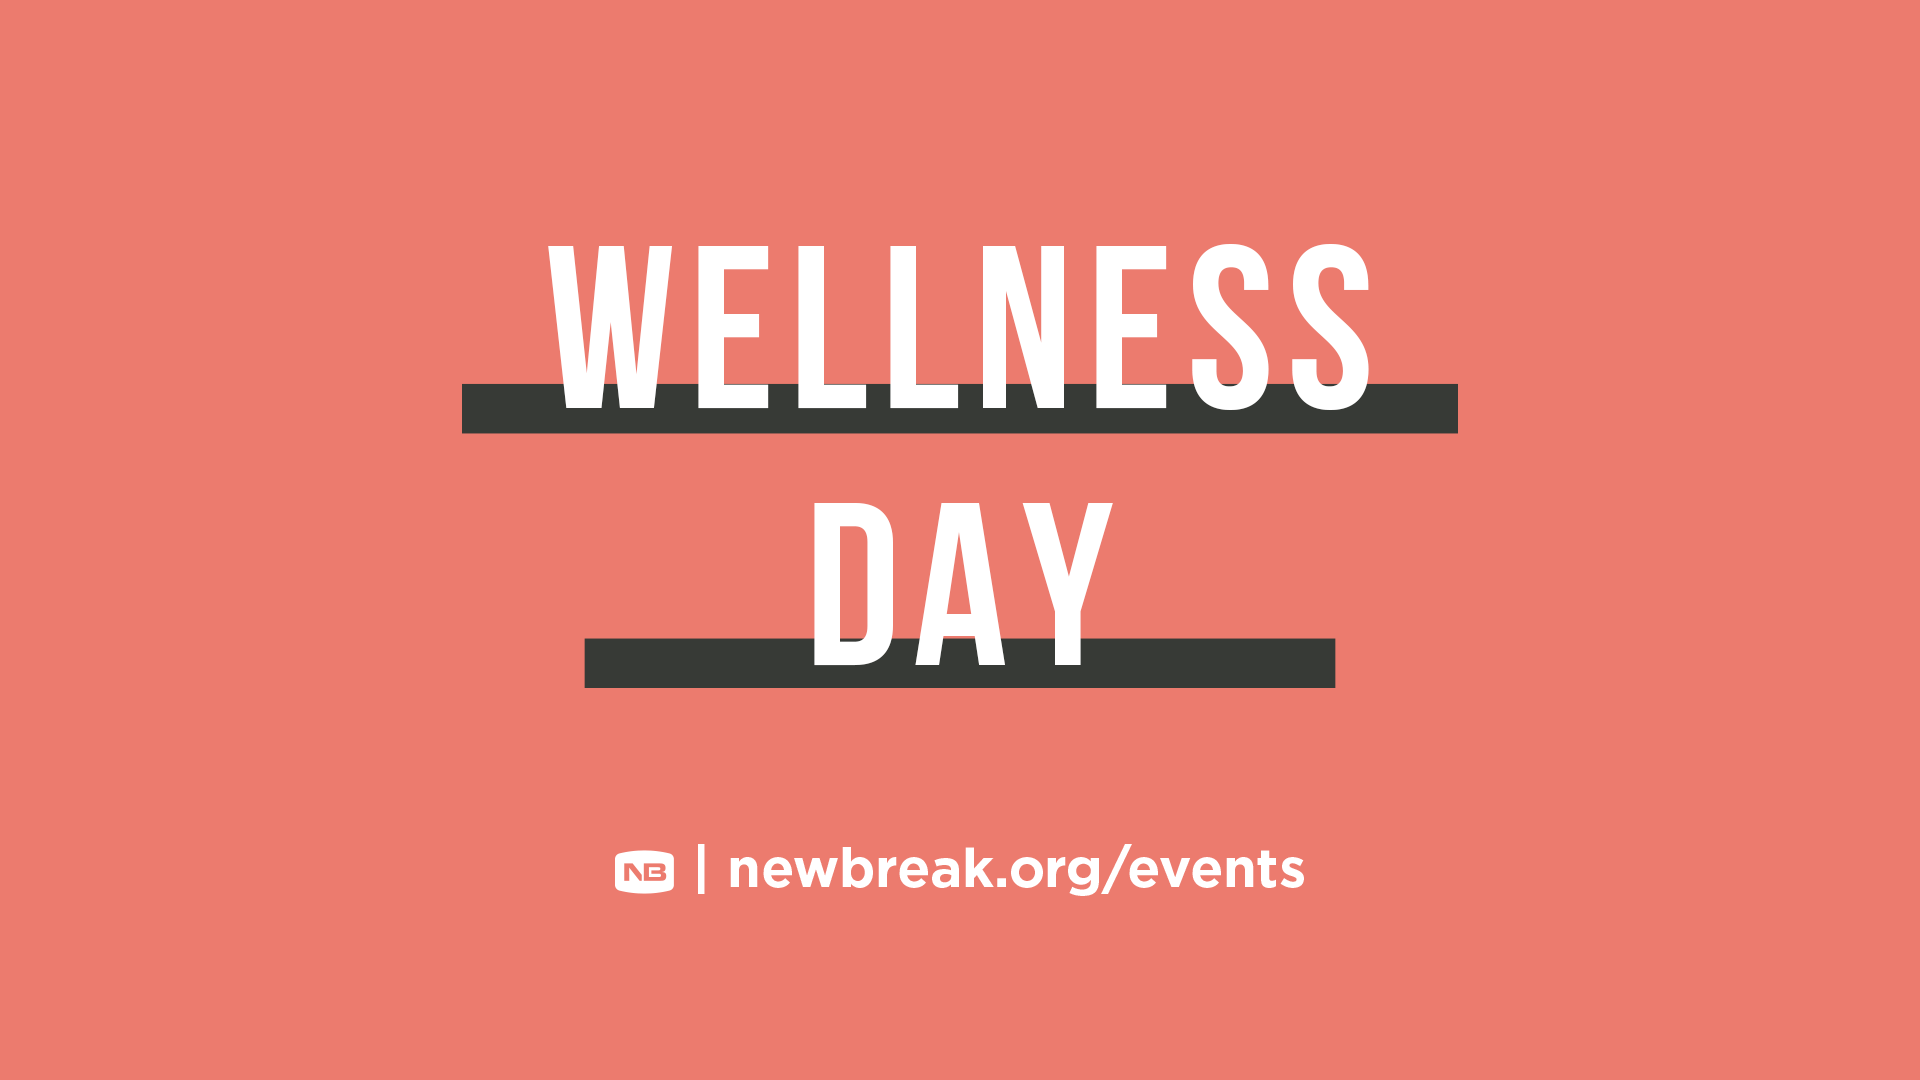 Wellness day